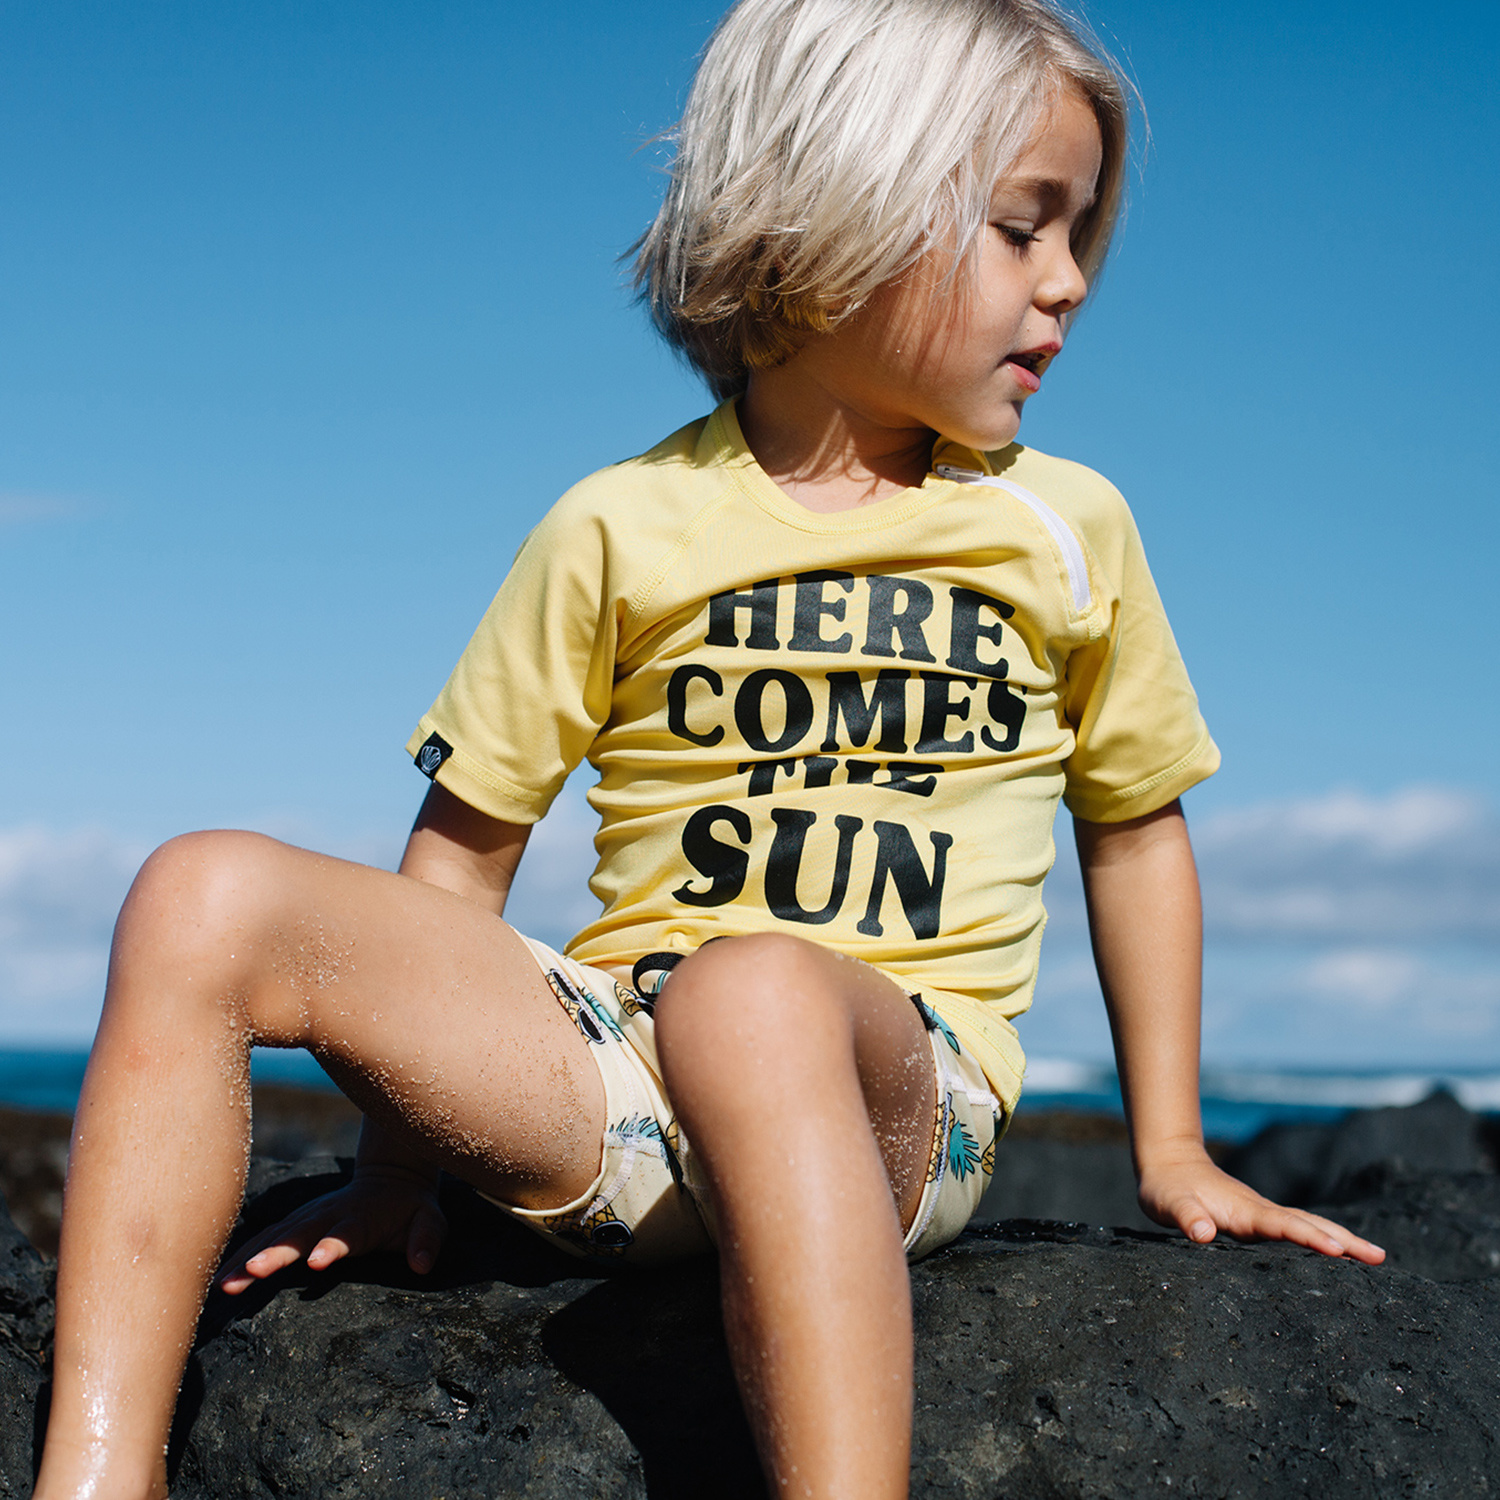 HERE COMES THE SUN-2